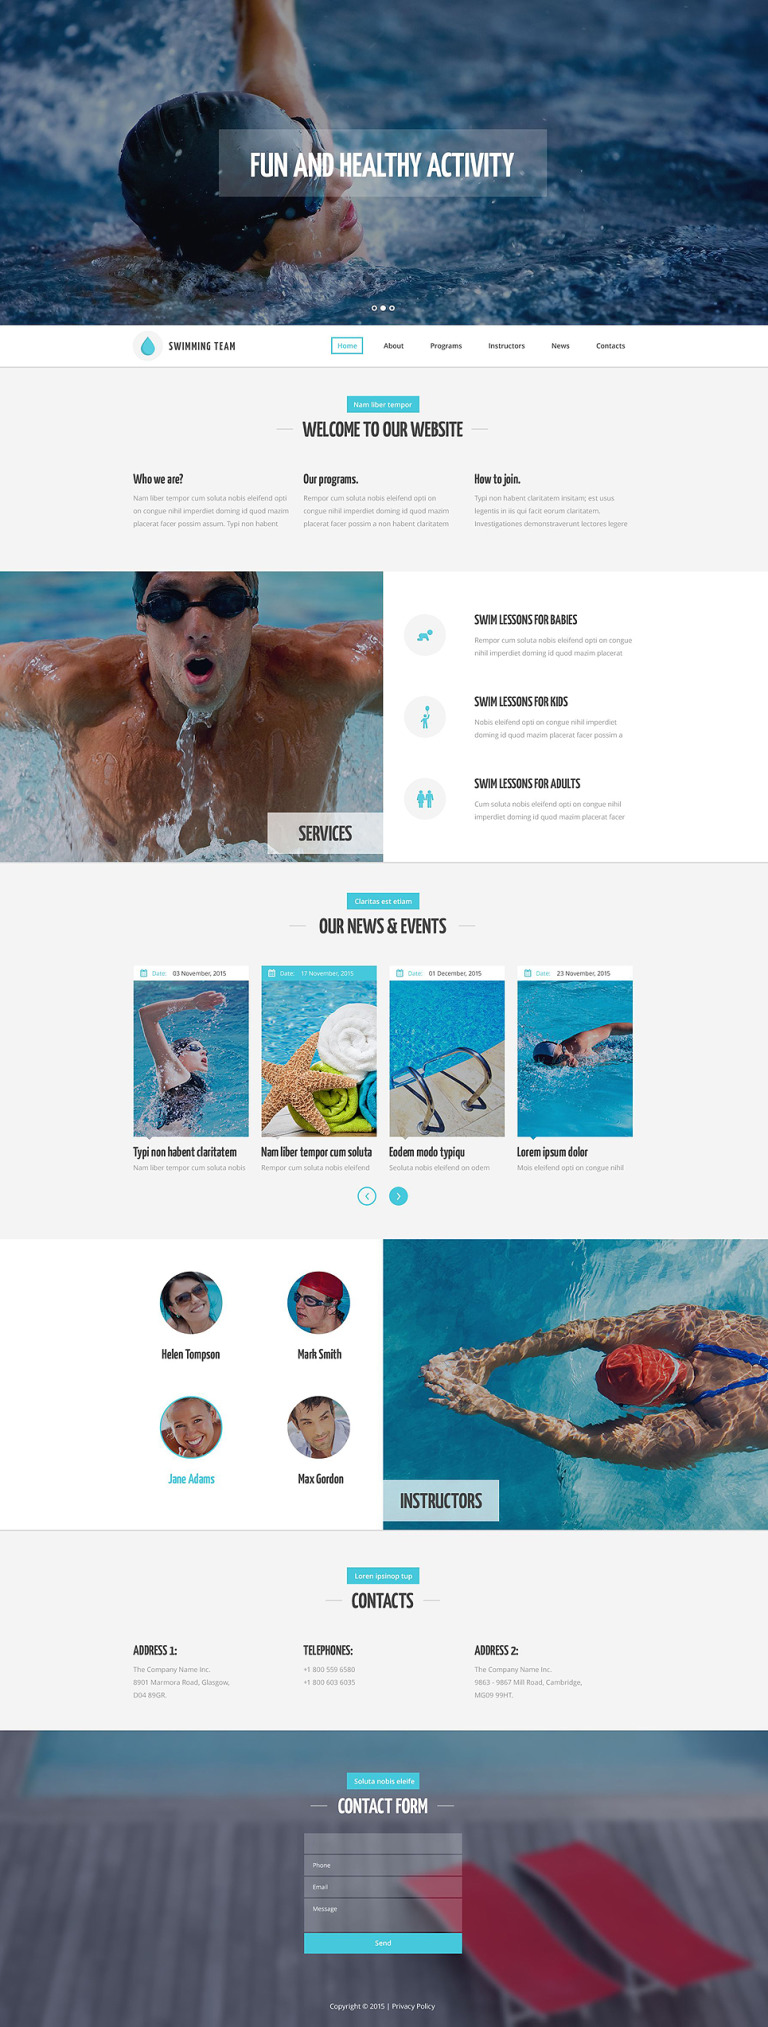 Swim Team Website Template New Screenshots BIG